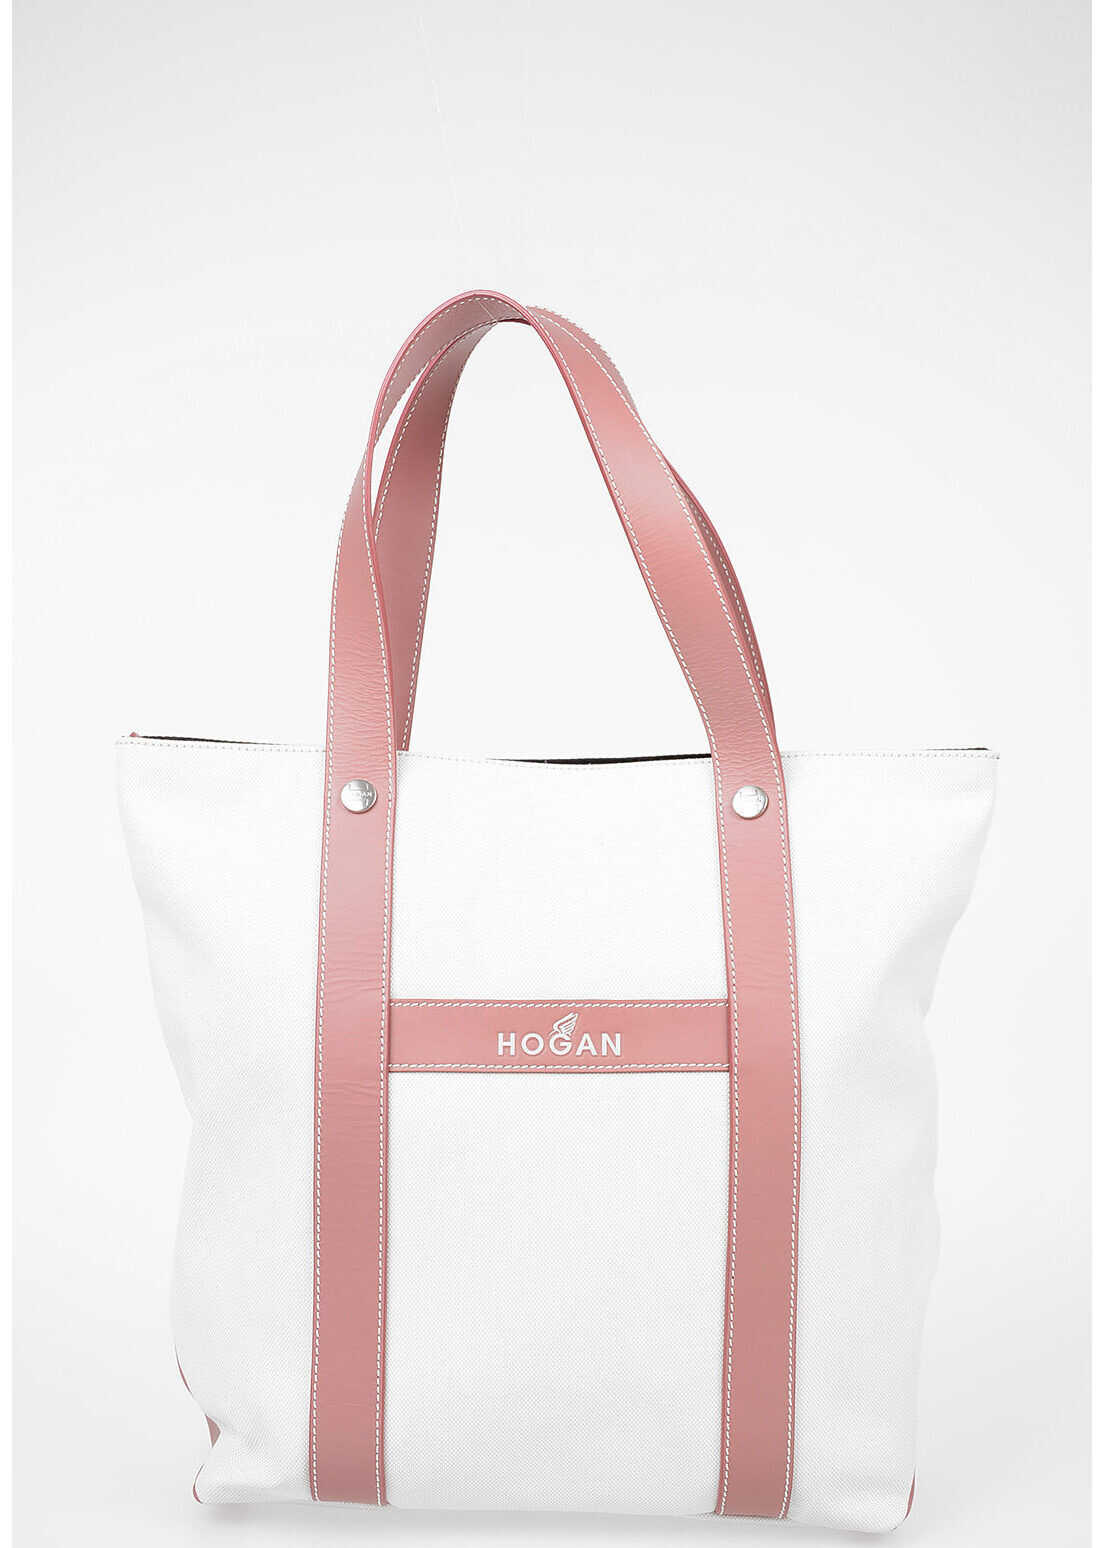 Hogan Leather and Fabric Tote Bag WHITE